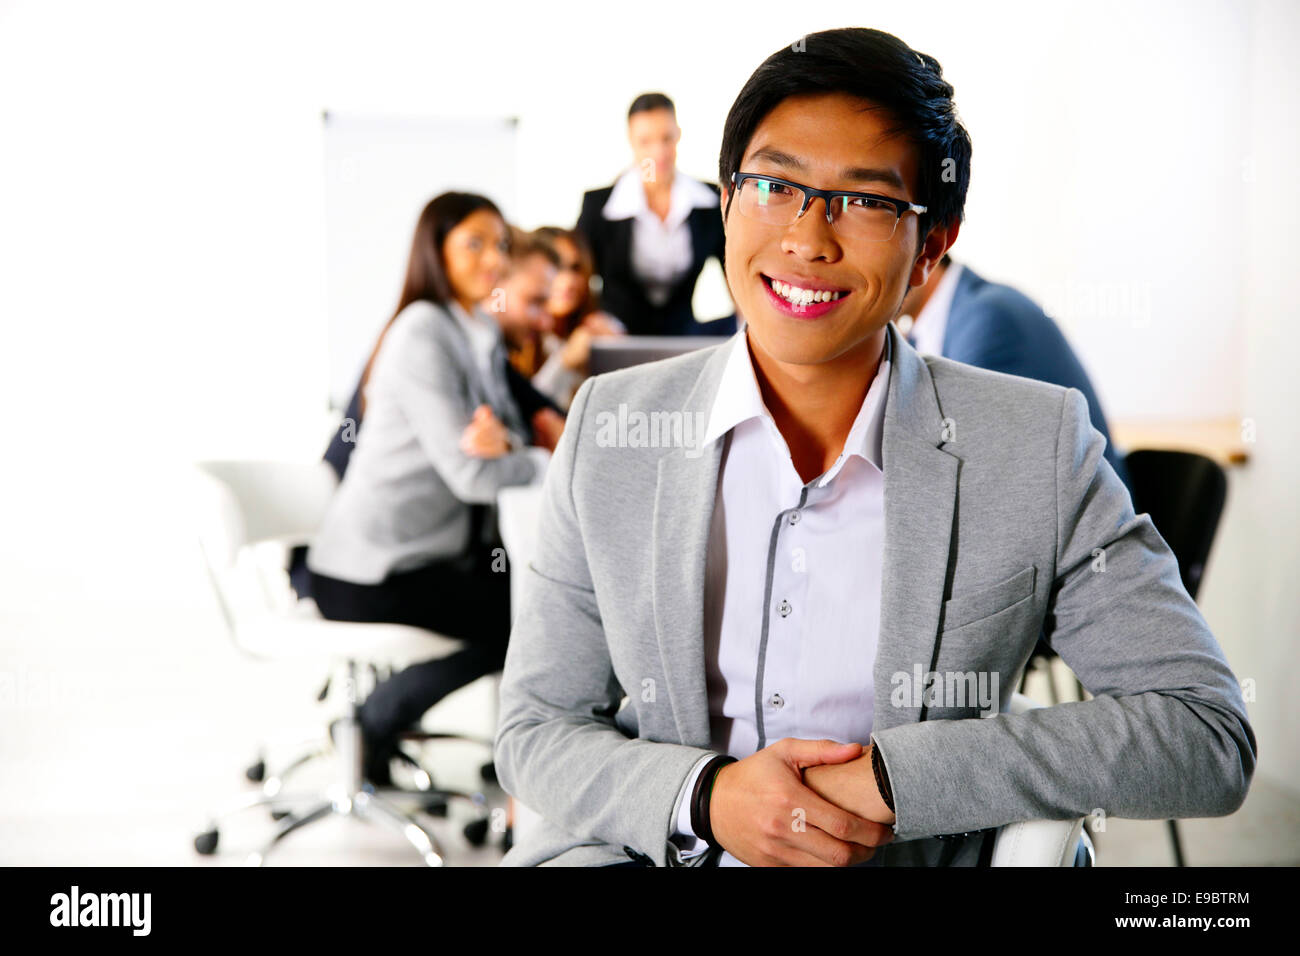 Businessman sitting on the office chair in front of business meeting Stock Photo